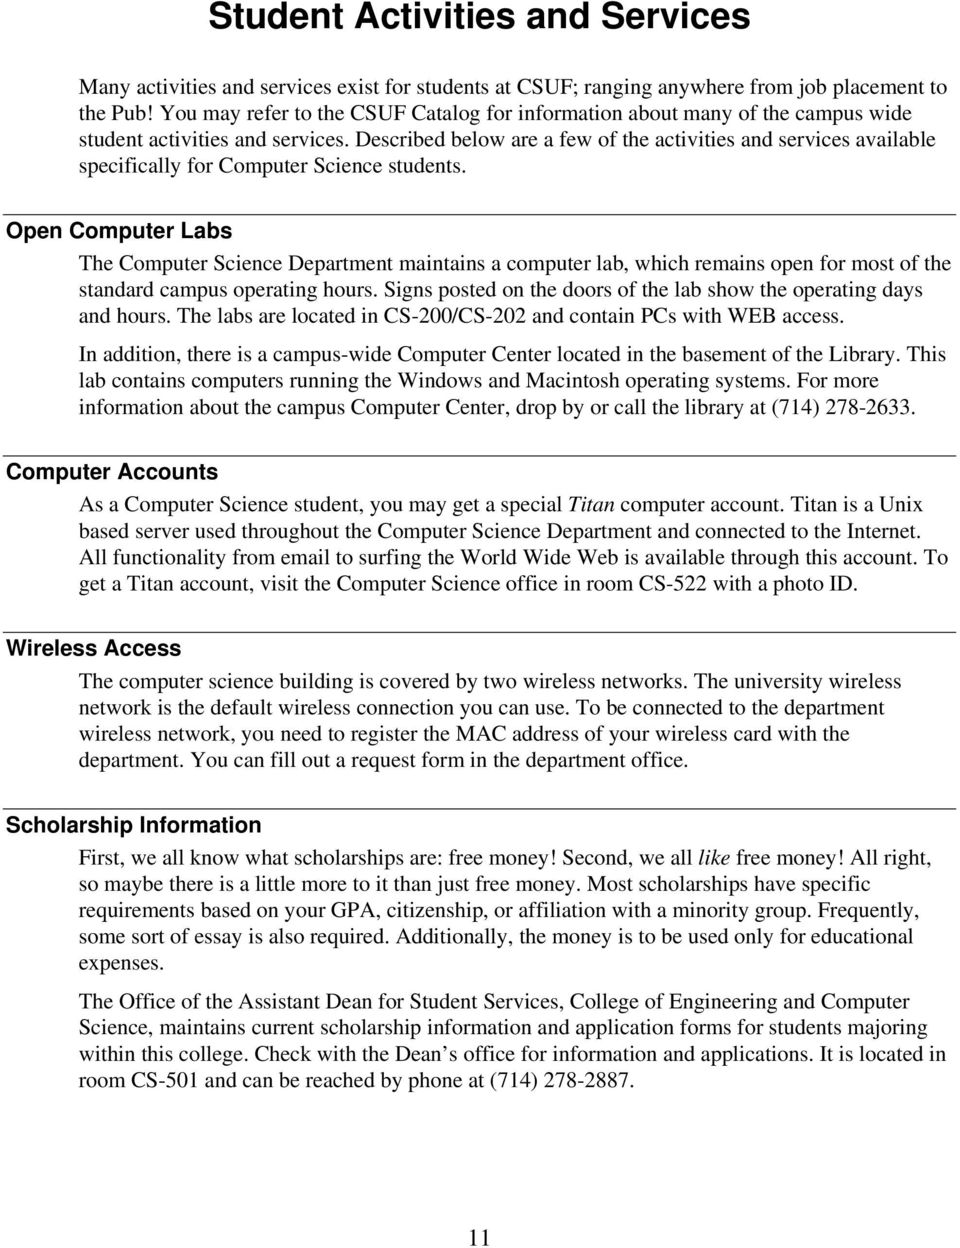 Described below are a few of the activities and services available specifically for Computer Science students.